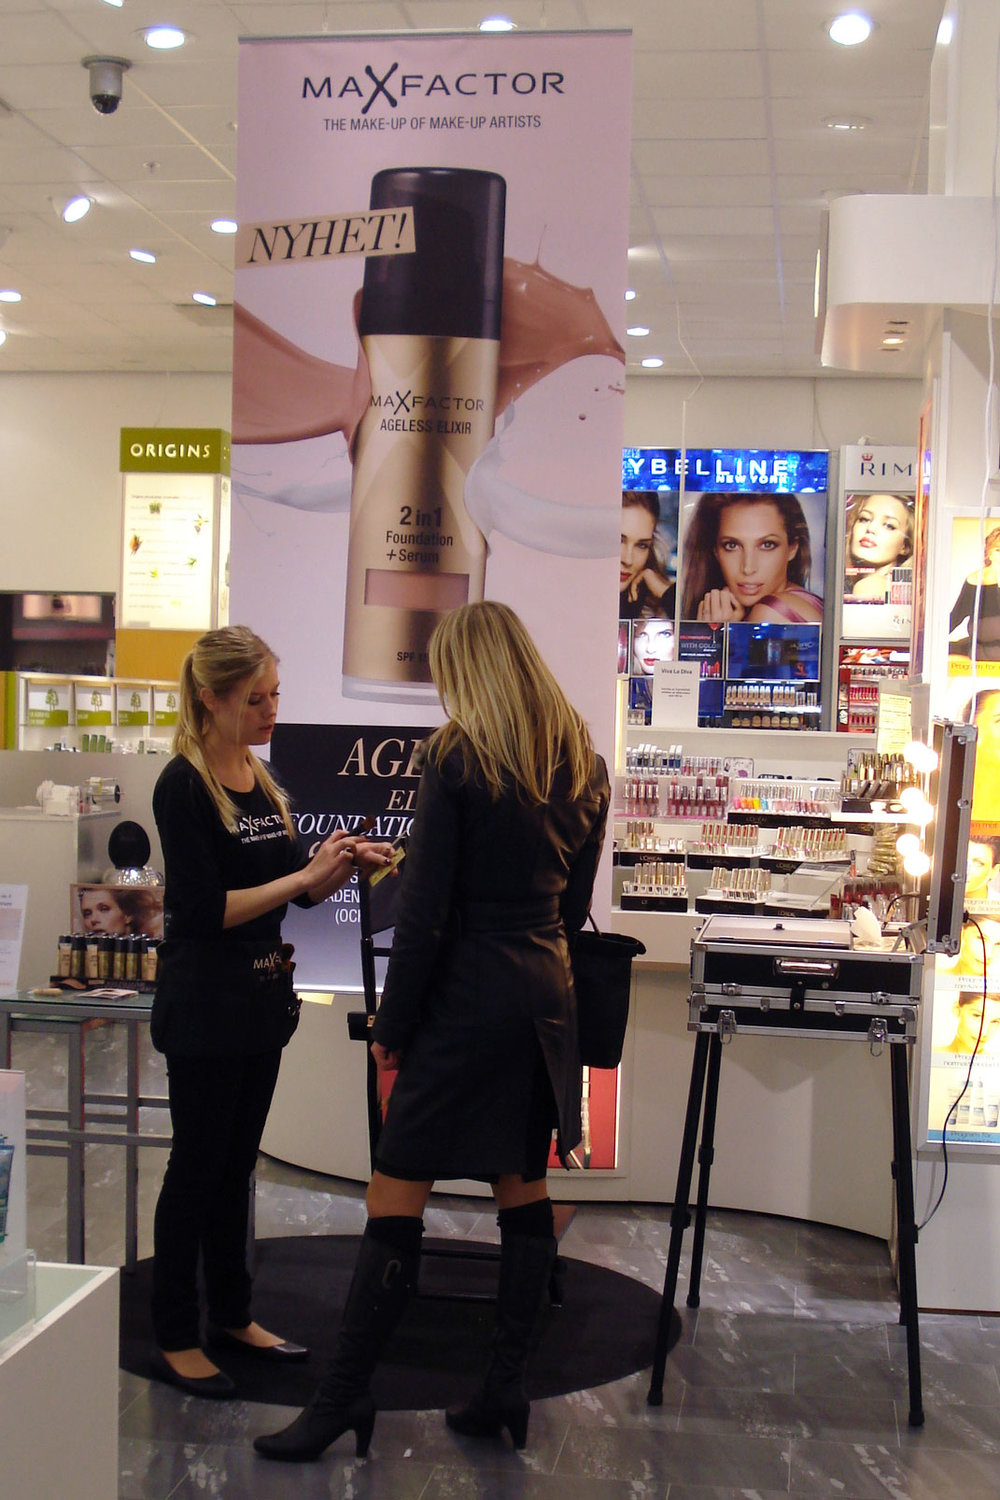 Max Factor demonstration på Åhlens city i Malmö.